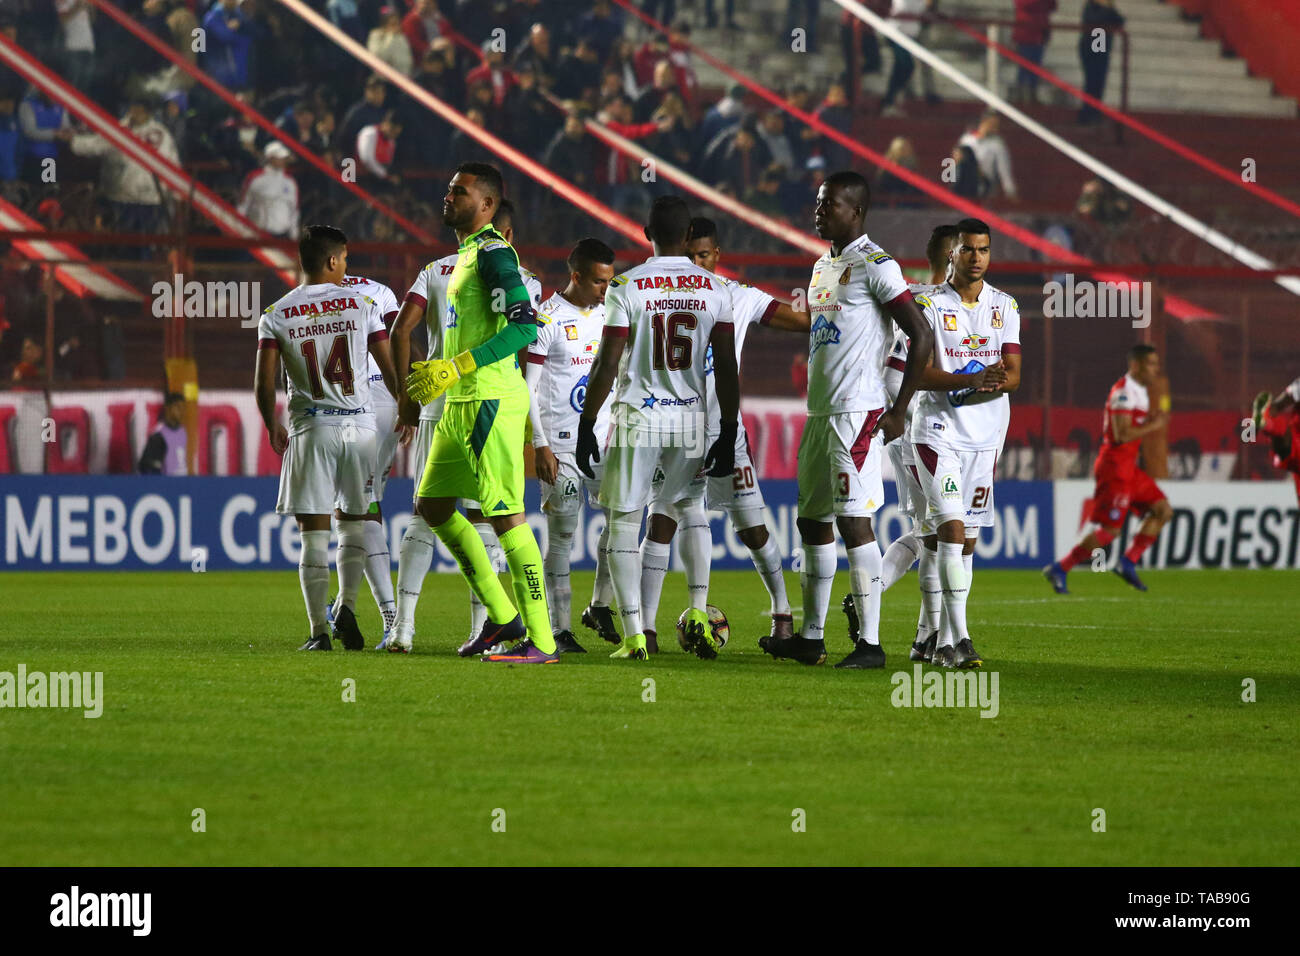 BUENOS AIRES, 23.05.2019: Team of Tolima during the match between Argentinos Juniors and Deportes Tolima for the 2nd round of Conmebol Sudamericana Cu - Stock Image